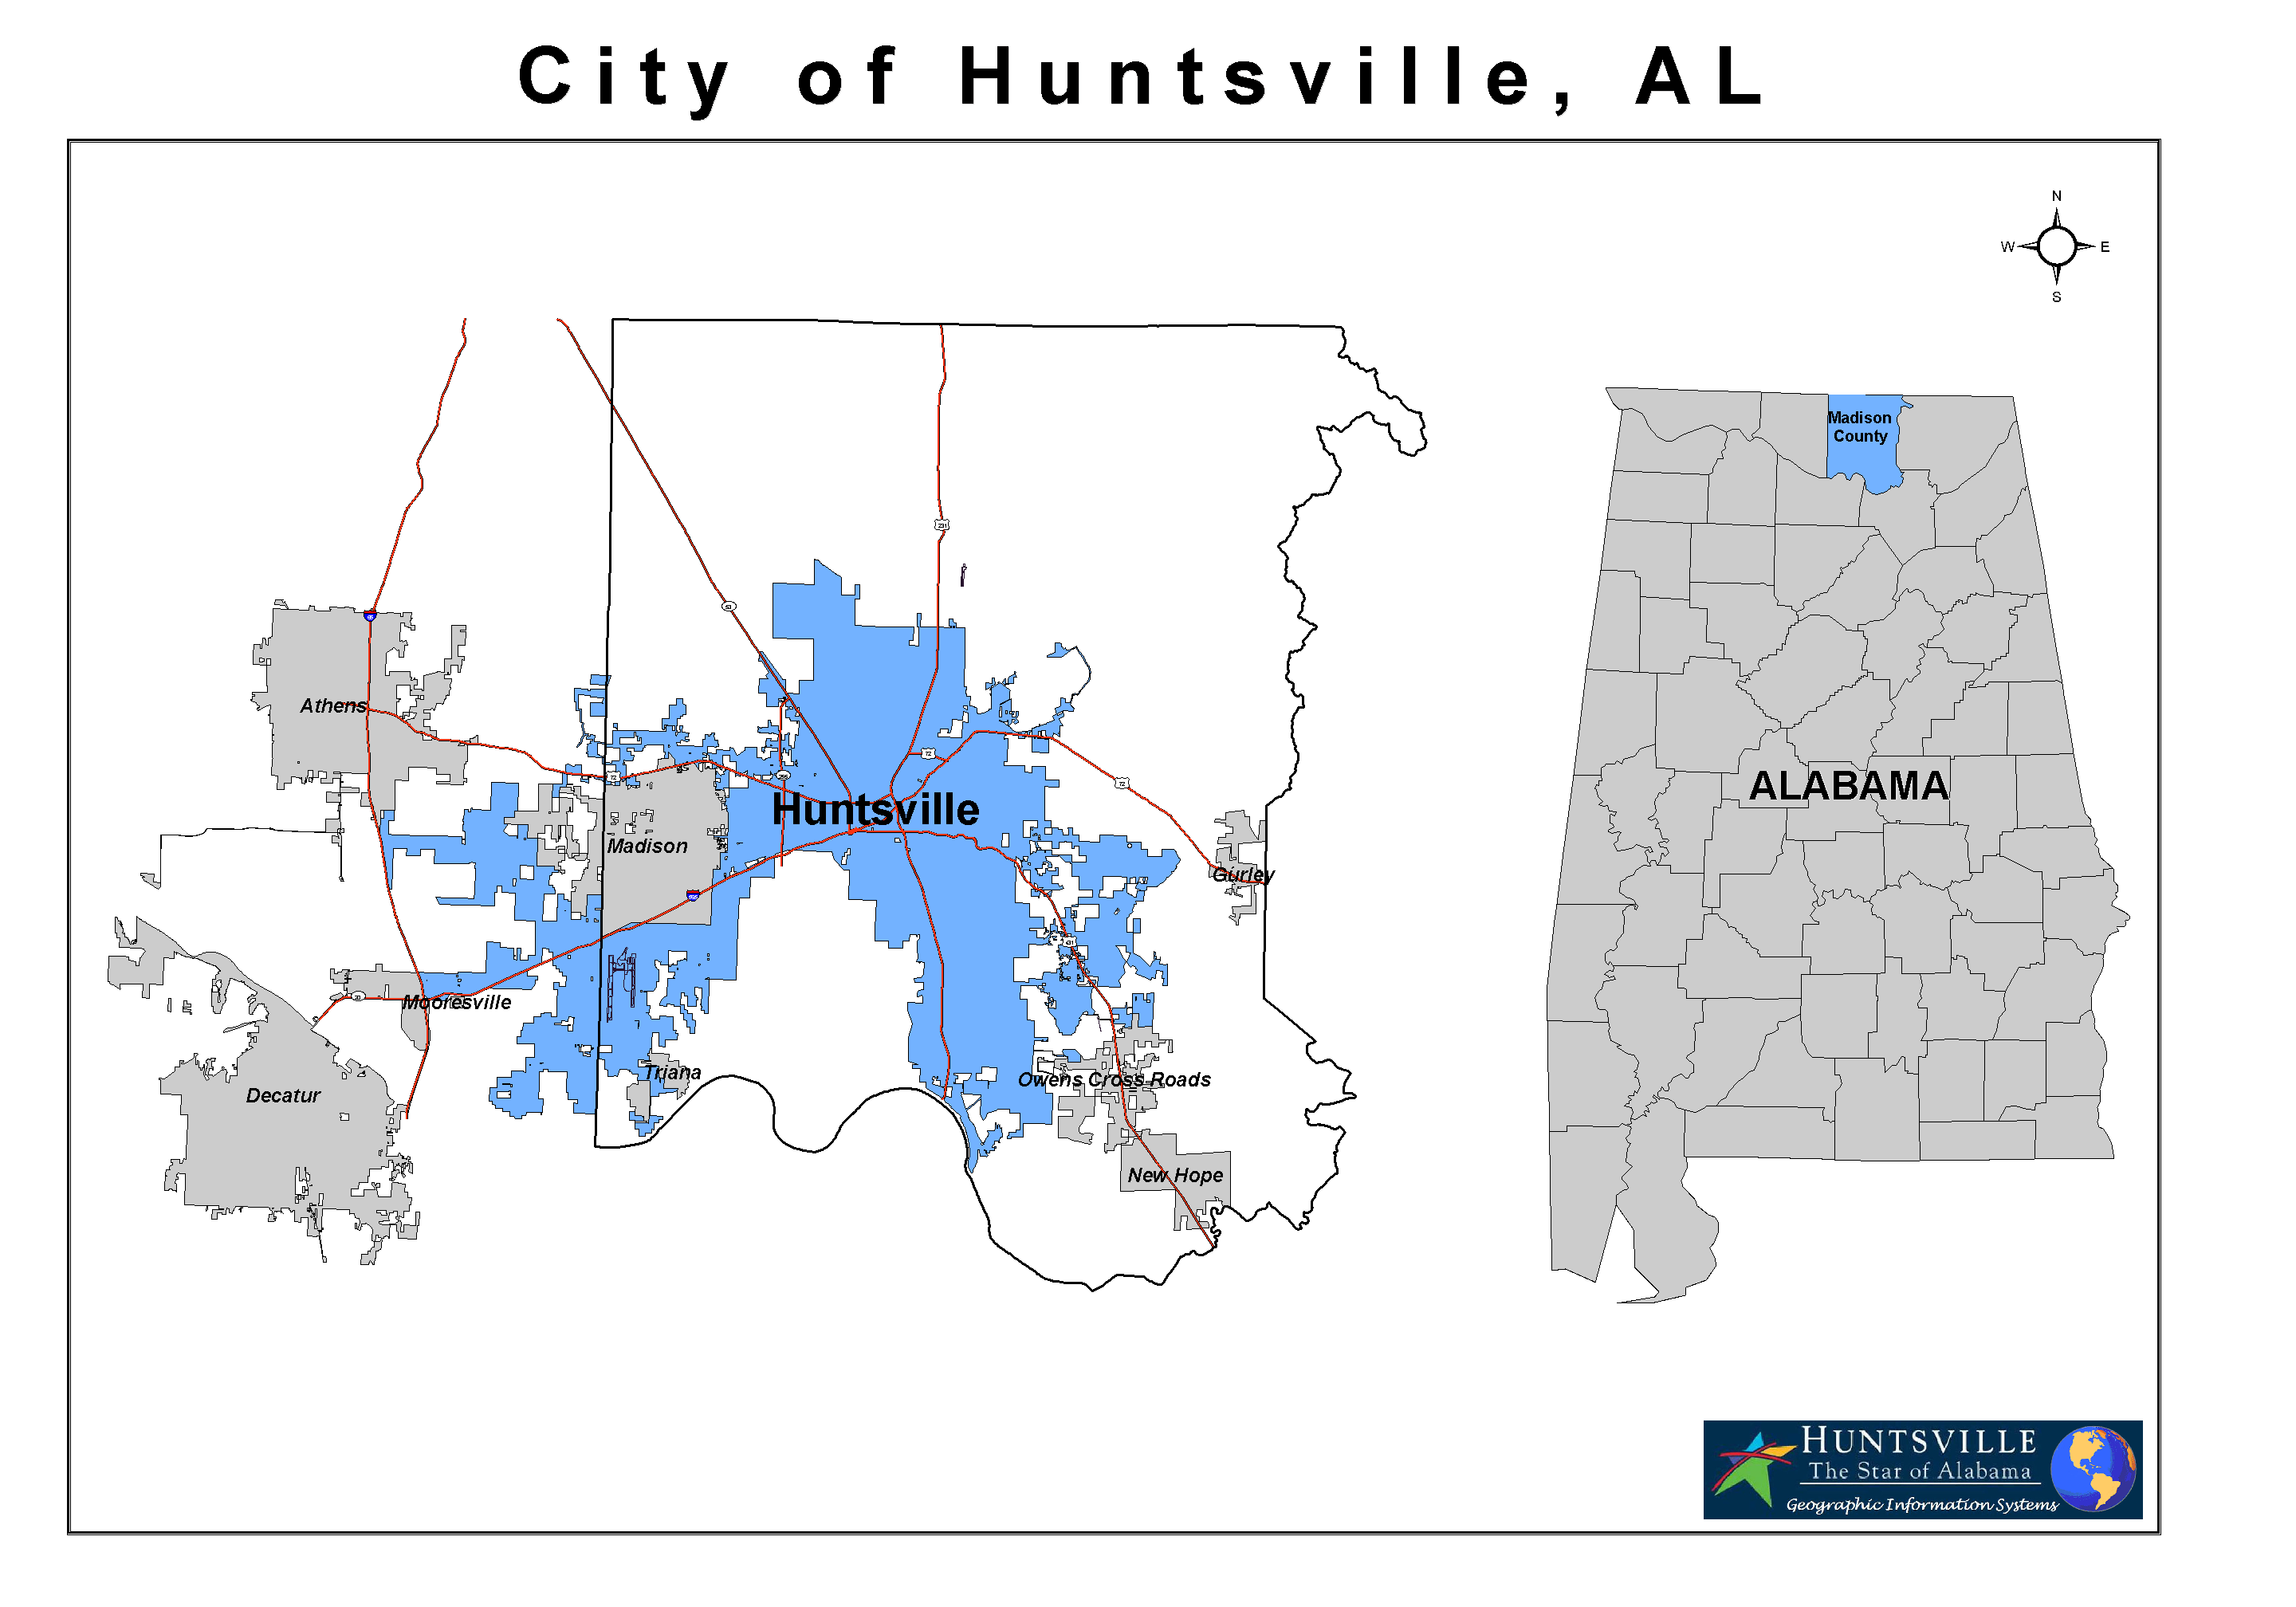 Alabama limestone county capshaw - Madison County Alabama With Current Huntsville Corporate Limits Highlighted In Blue Png